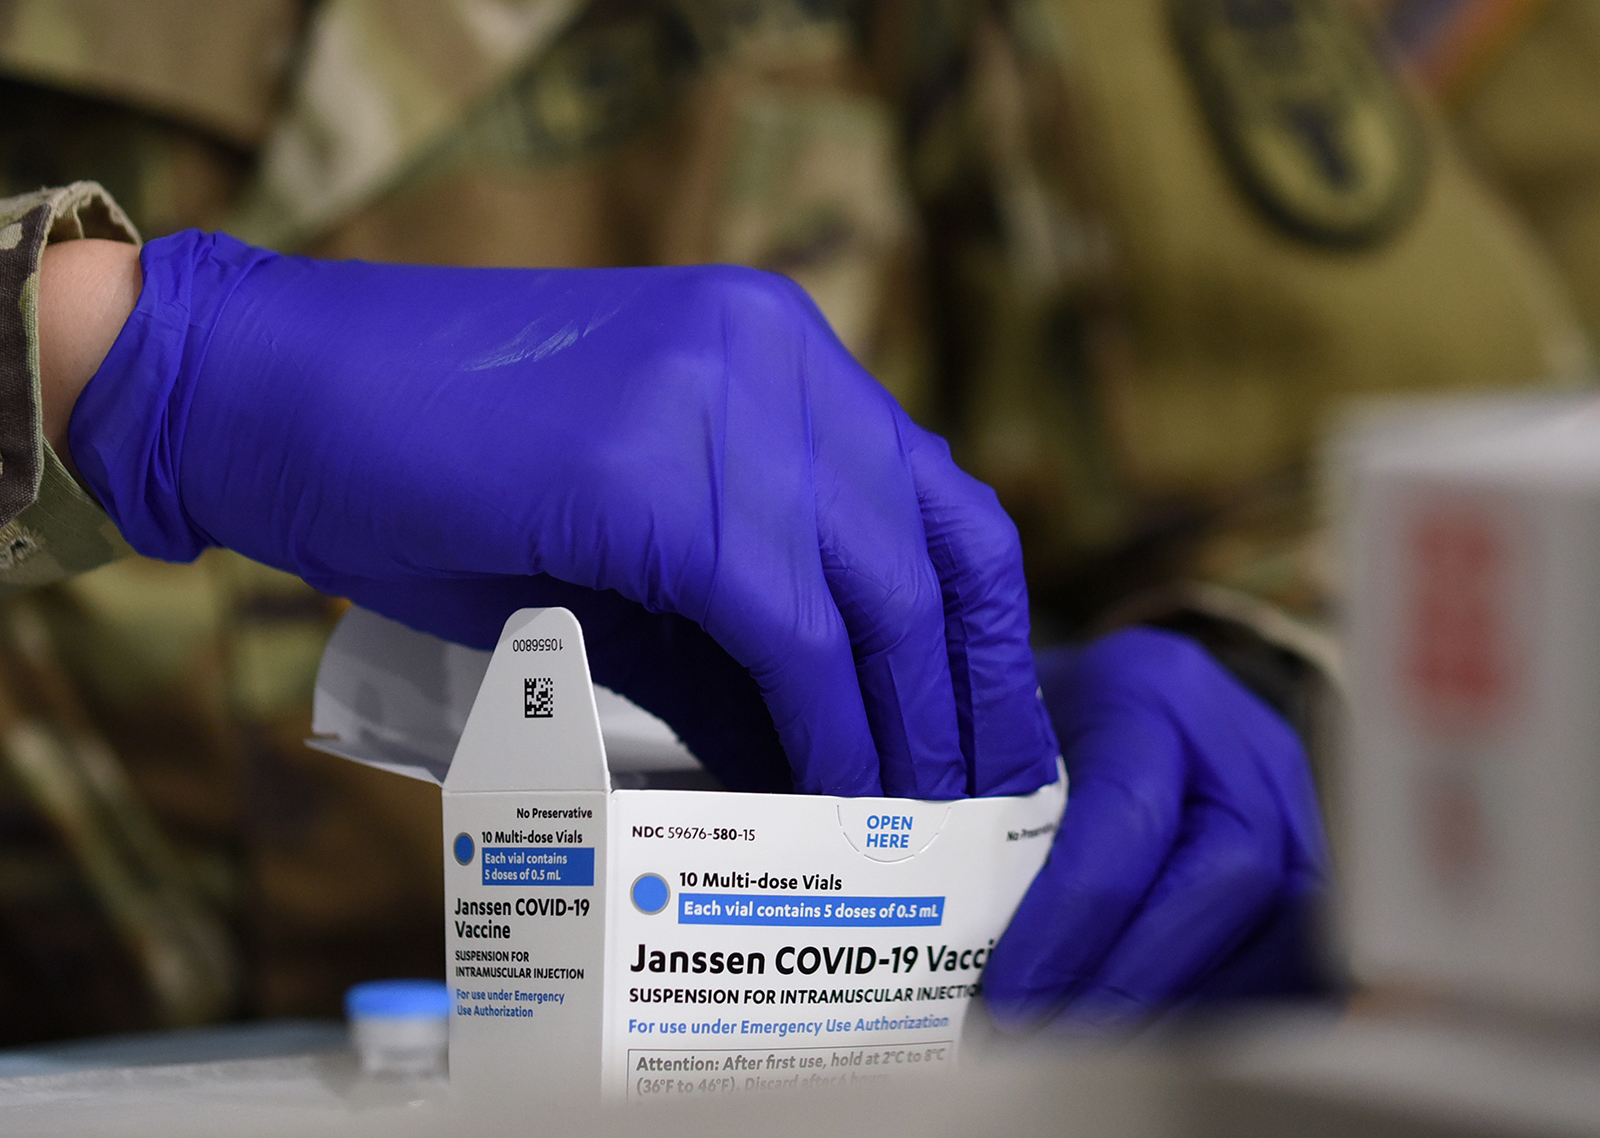 An Army medic removes vials of Johnson & Johnson Covid-19 vaccine from a box at a vaccination site in Orlando, Florida, on April 10.